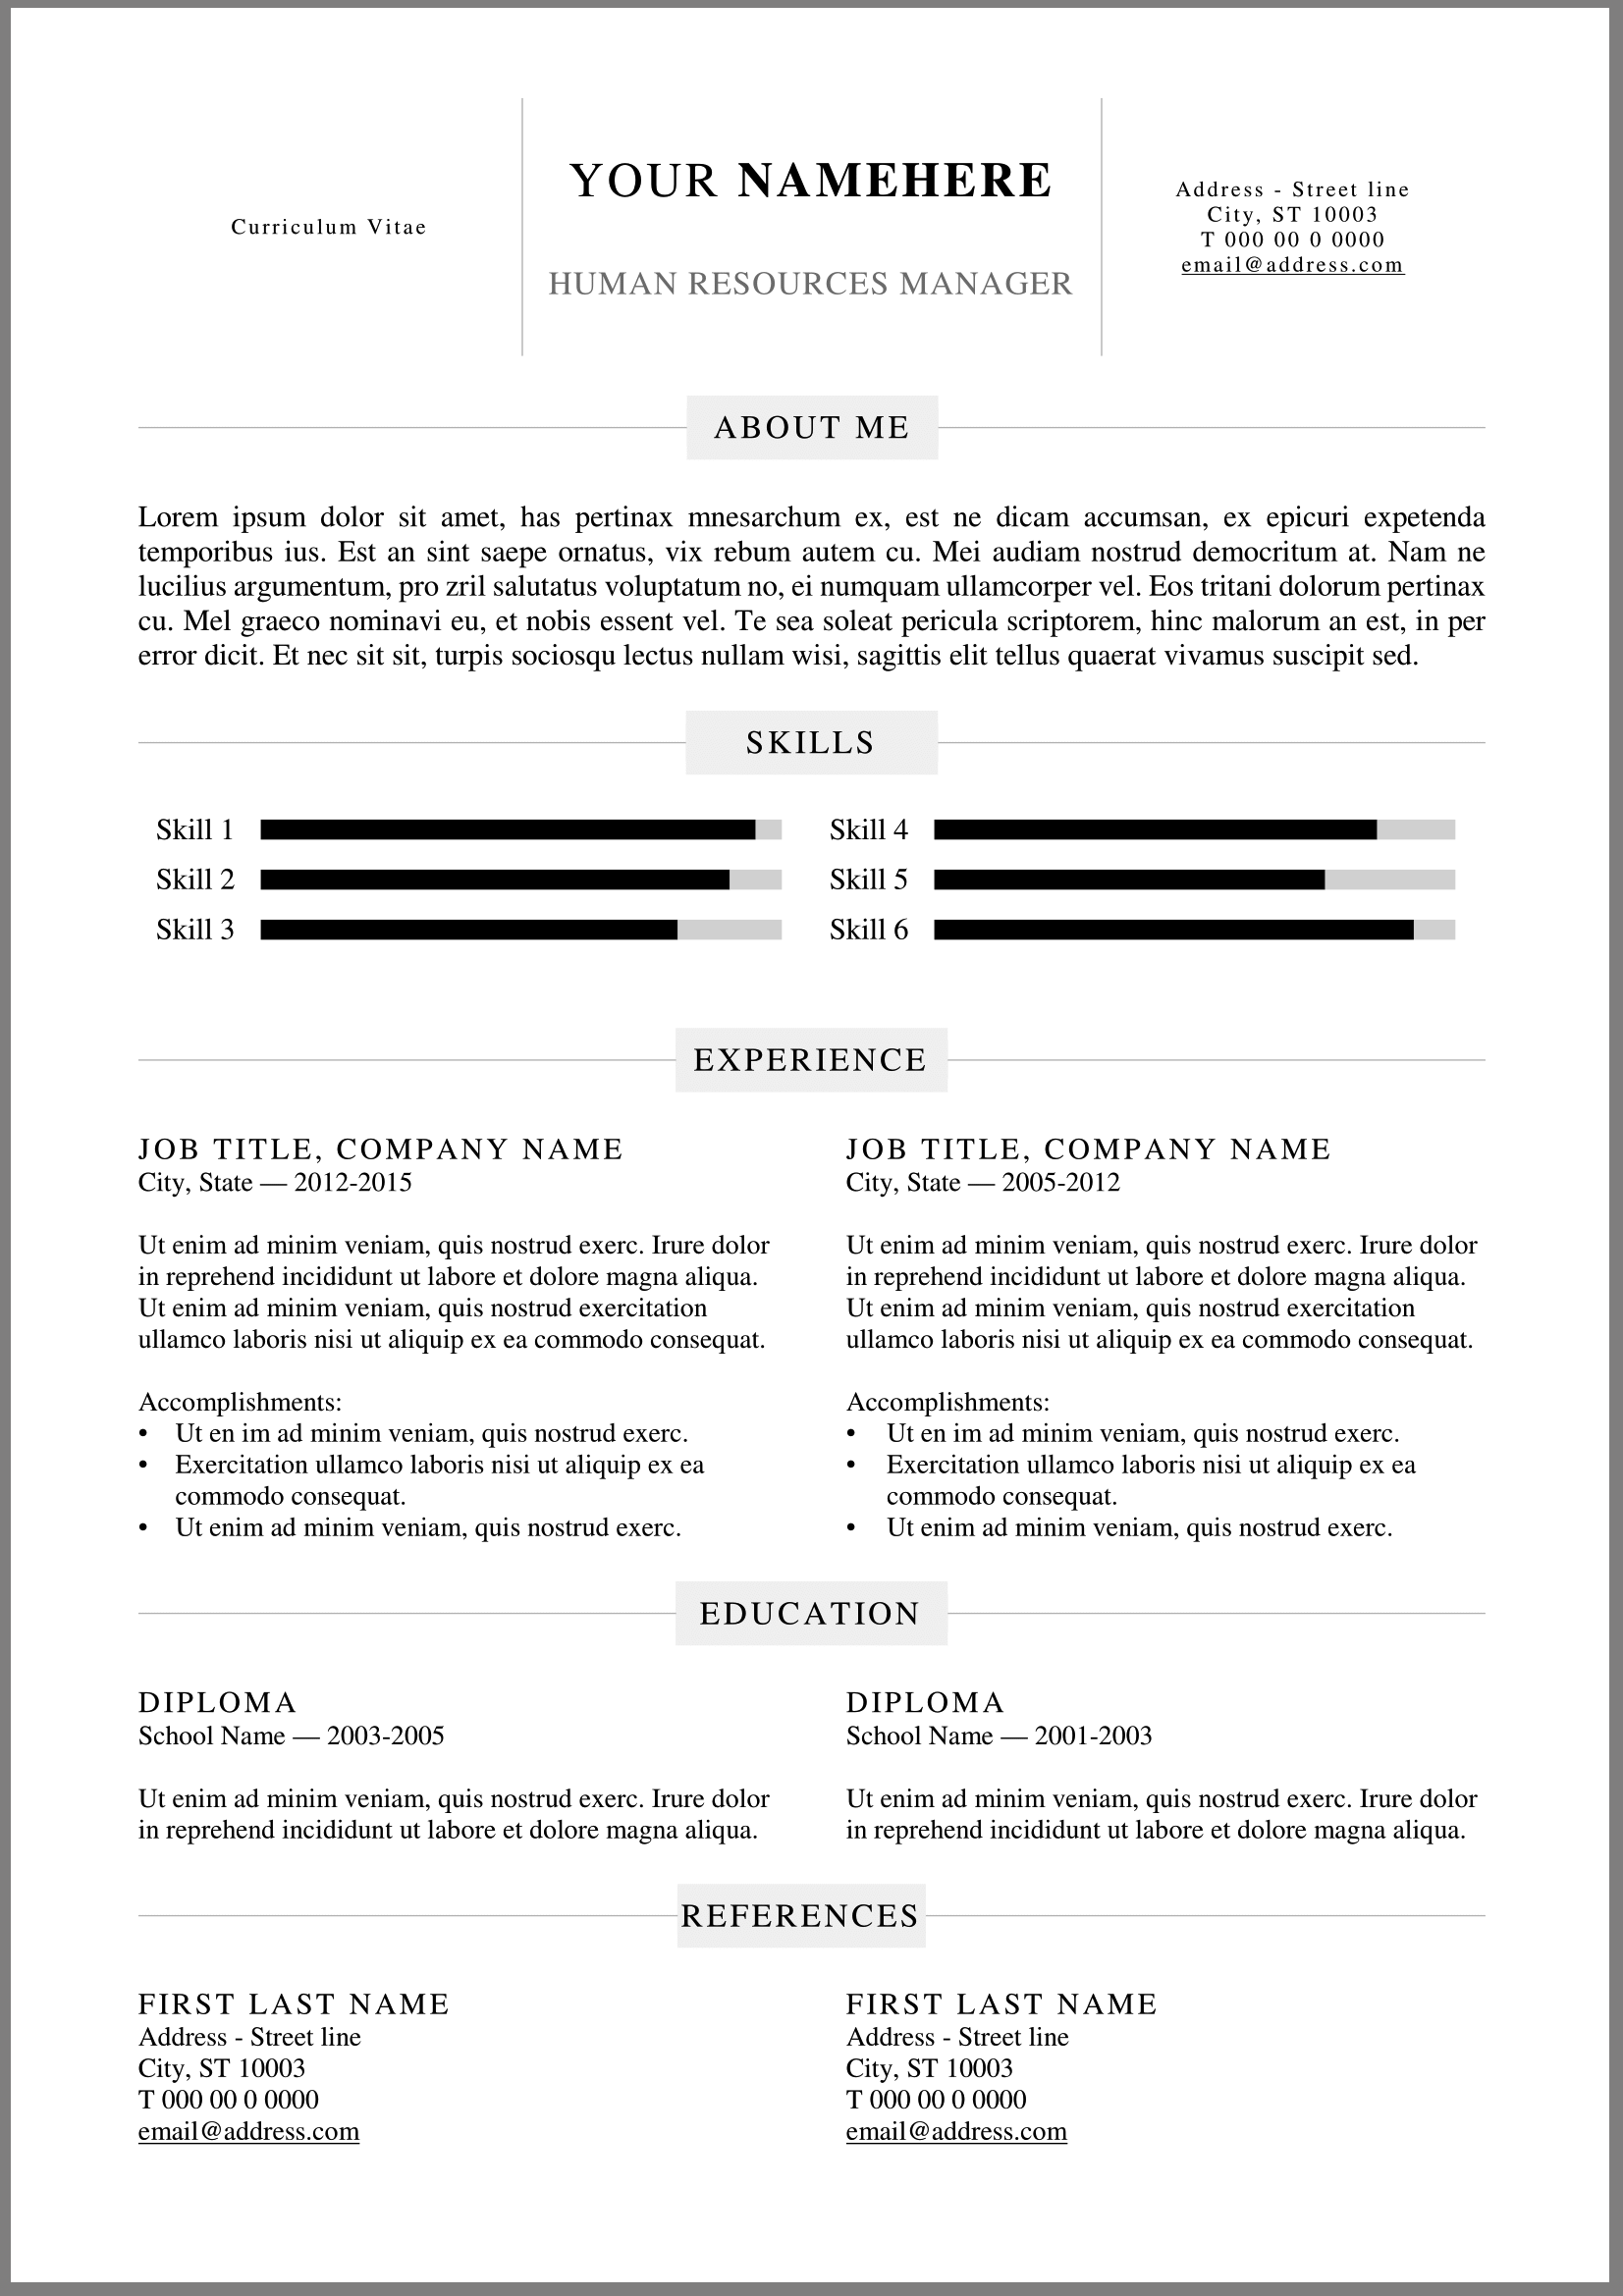 free resume word templates to impress your employer responsive - Free Resume Templates Word Document